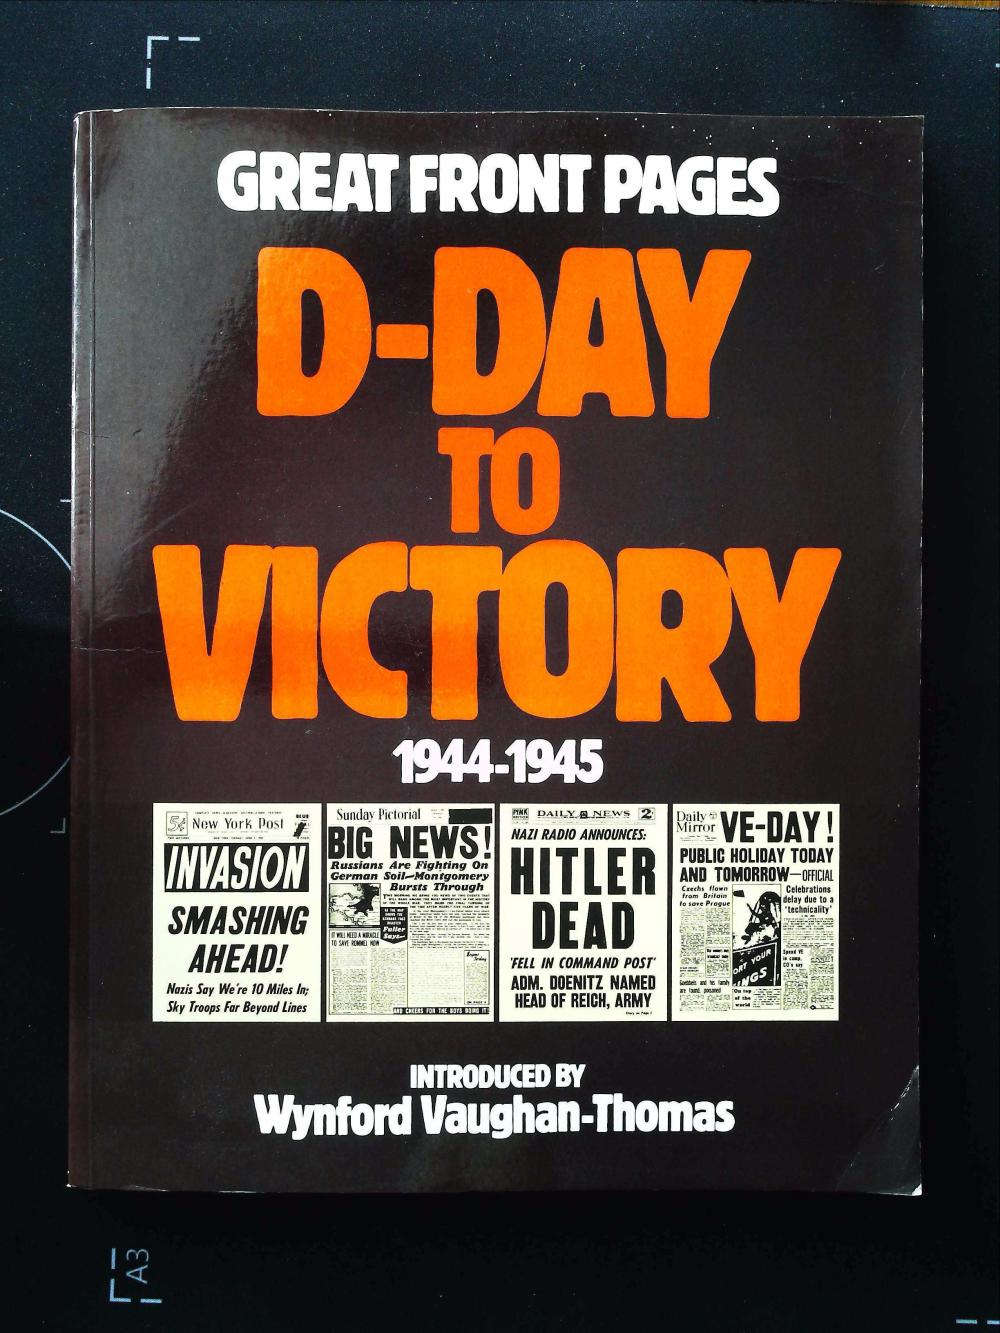 Great Front Pages D Day To Victory 1944 1945 softback book Published 1984 Collins ISBN 0 00 217343